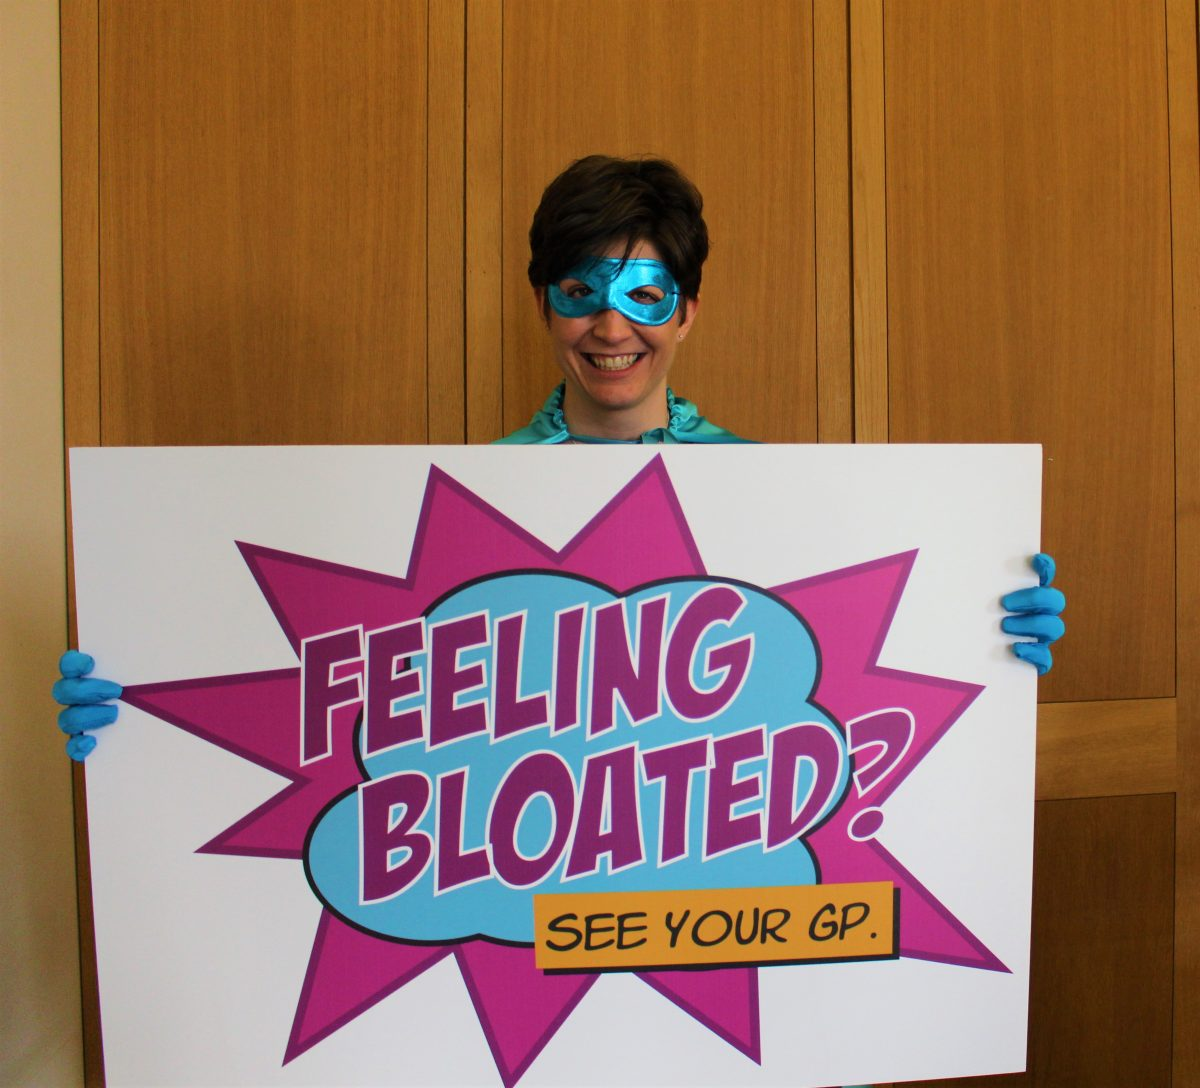 Alison Thewliss Mp Becomes Teal Hero For Ovarian Cancer Awareness Month Alison Thewliss